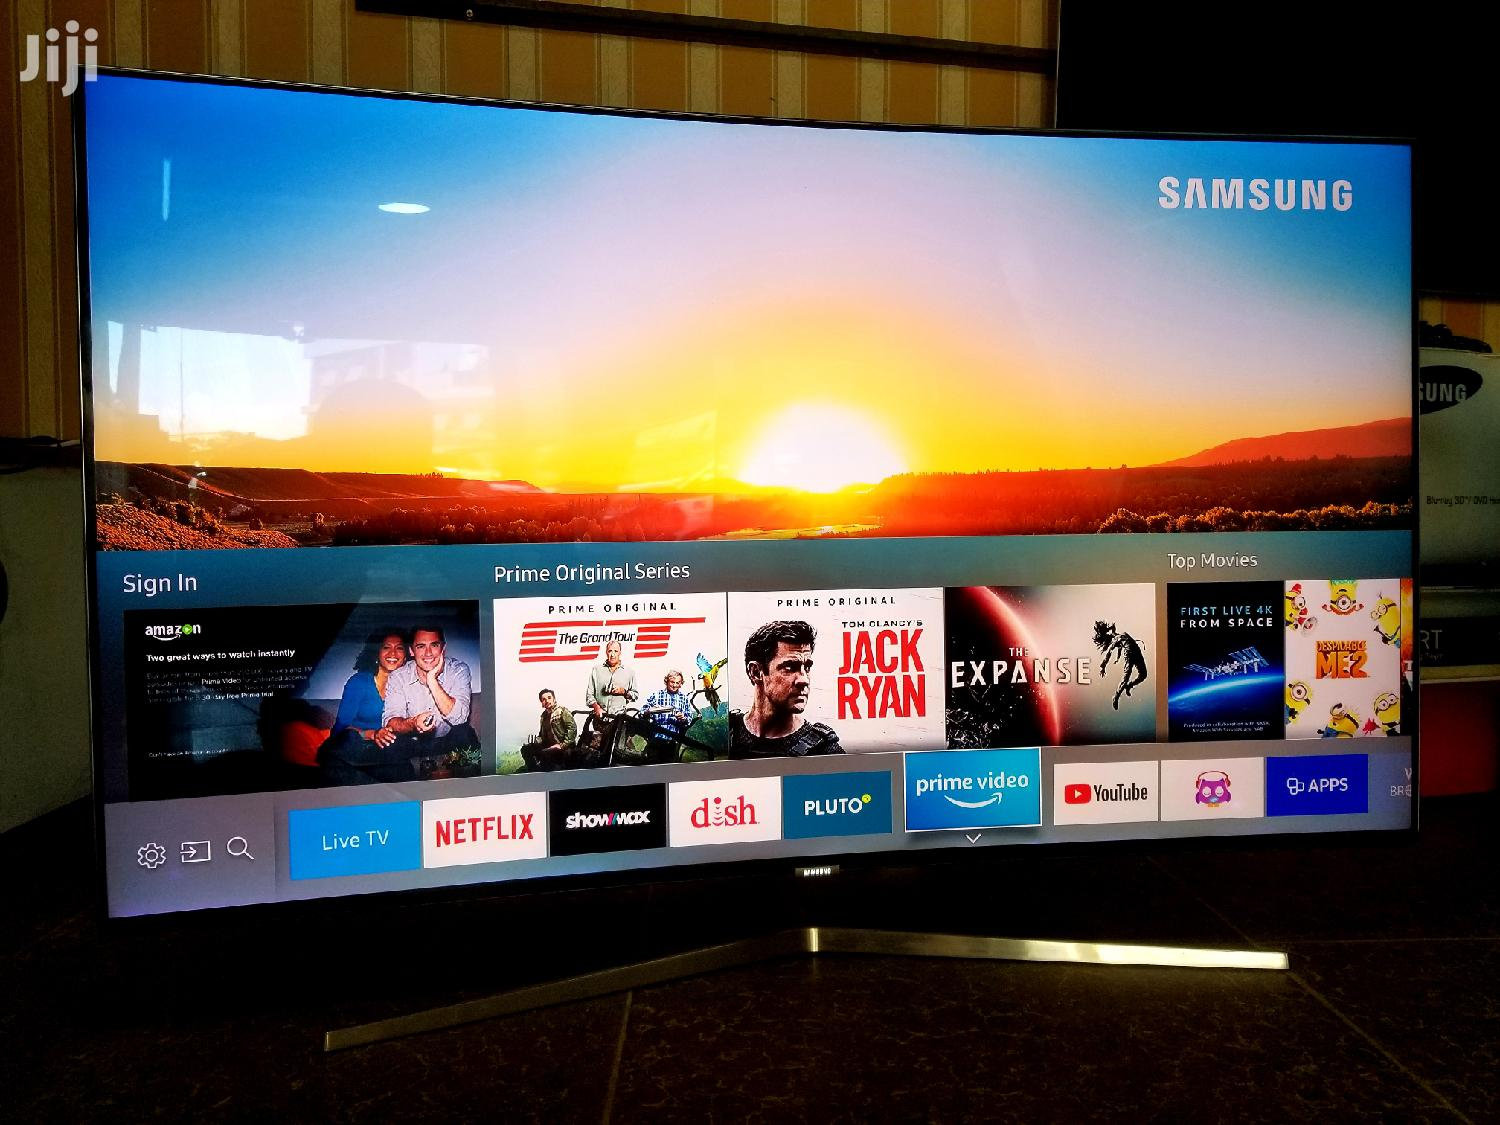 Samsung 55inches QLED Curved Series 9 Super UHD 4k Tv